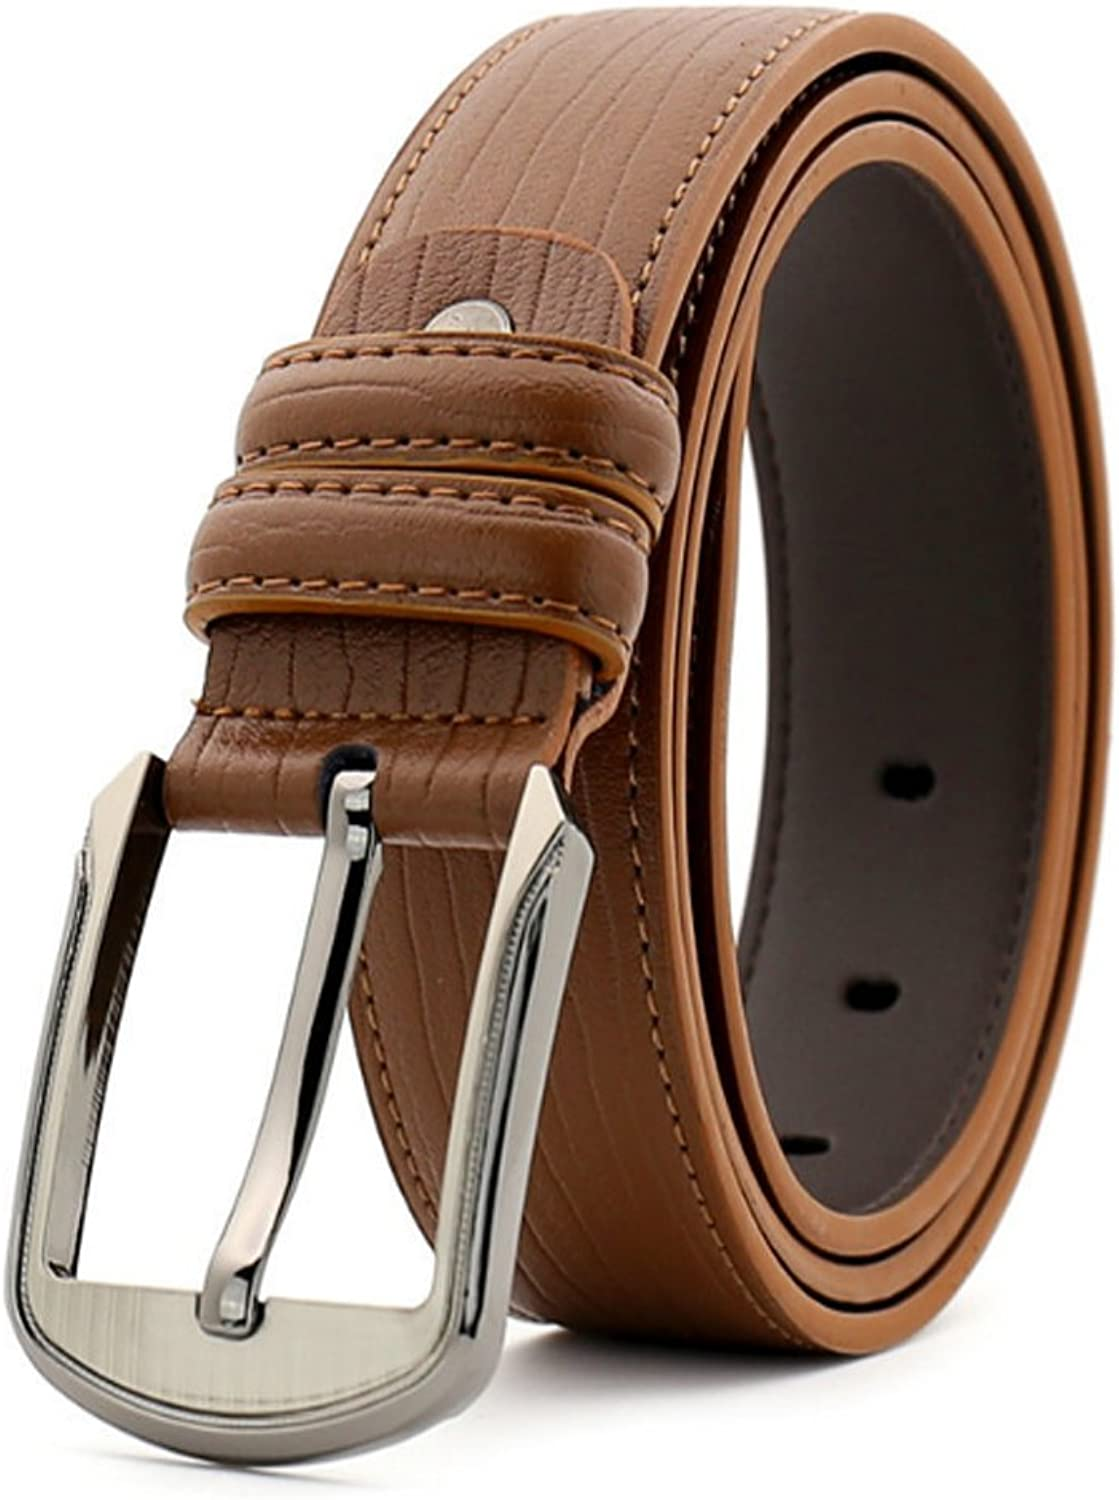 Men Leather Dress Belt Men's Belt Business Casual Leather Pin Buckle Belt Suitable for All Seasons and Places (color   Yellow Brown)